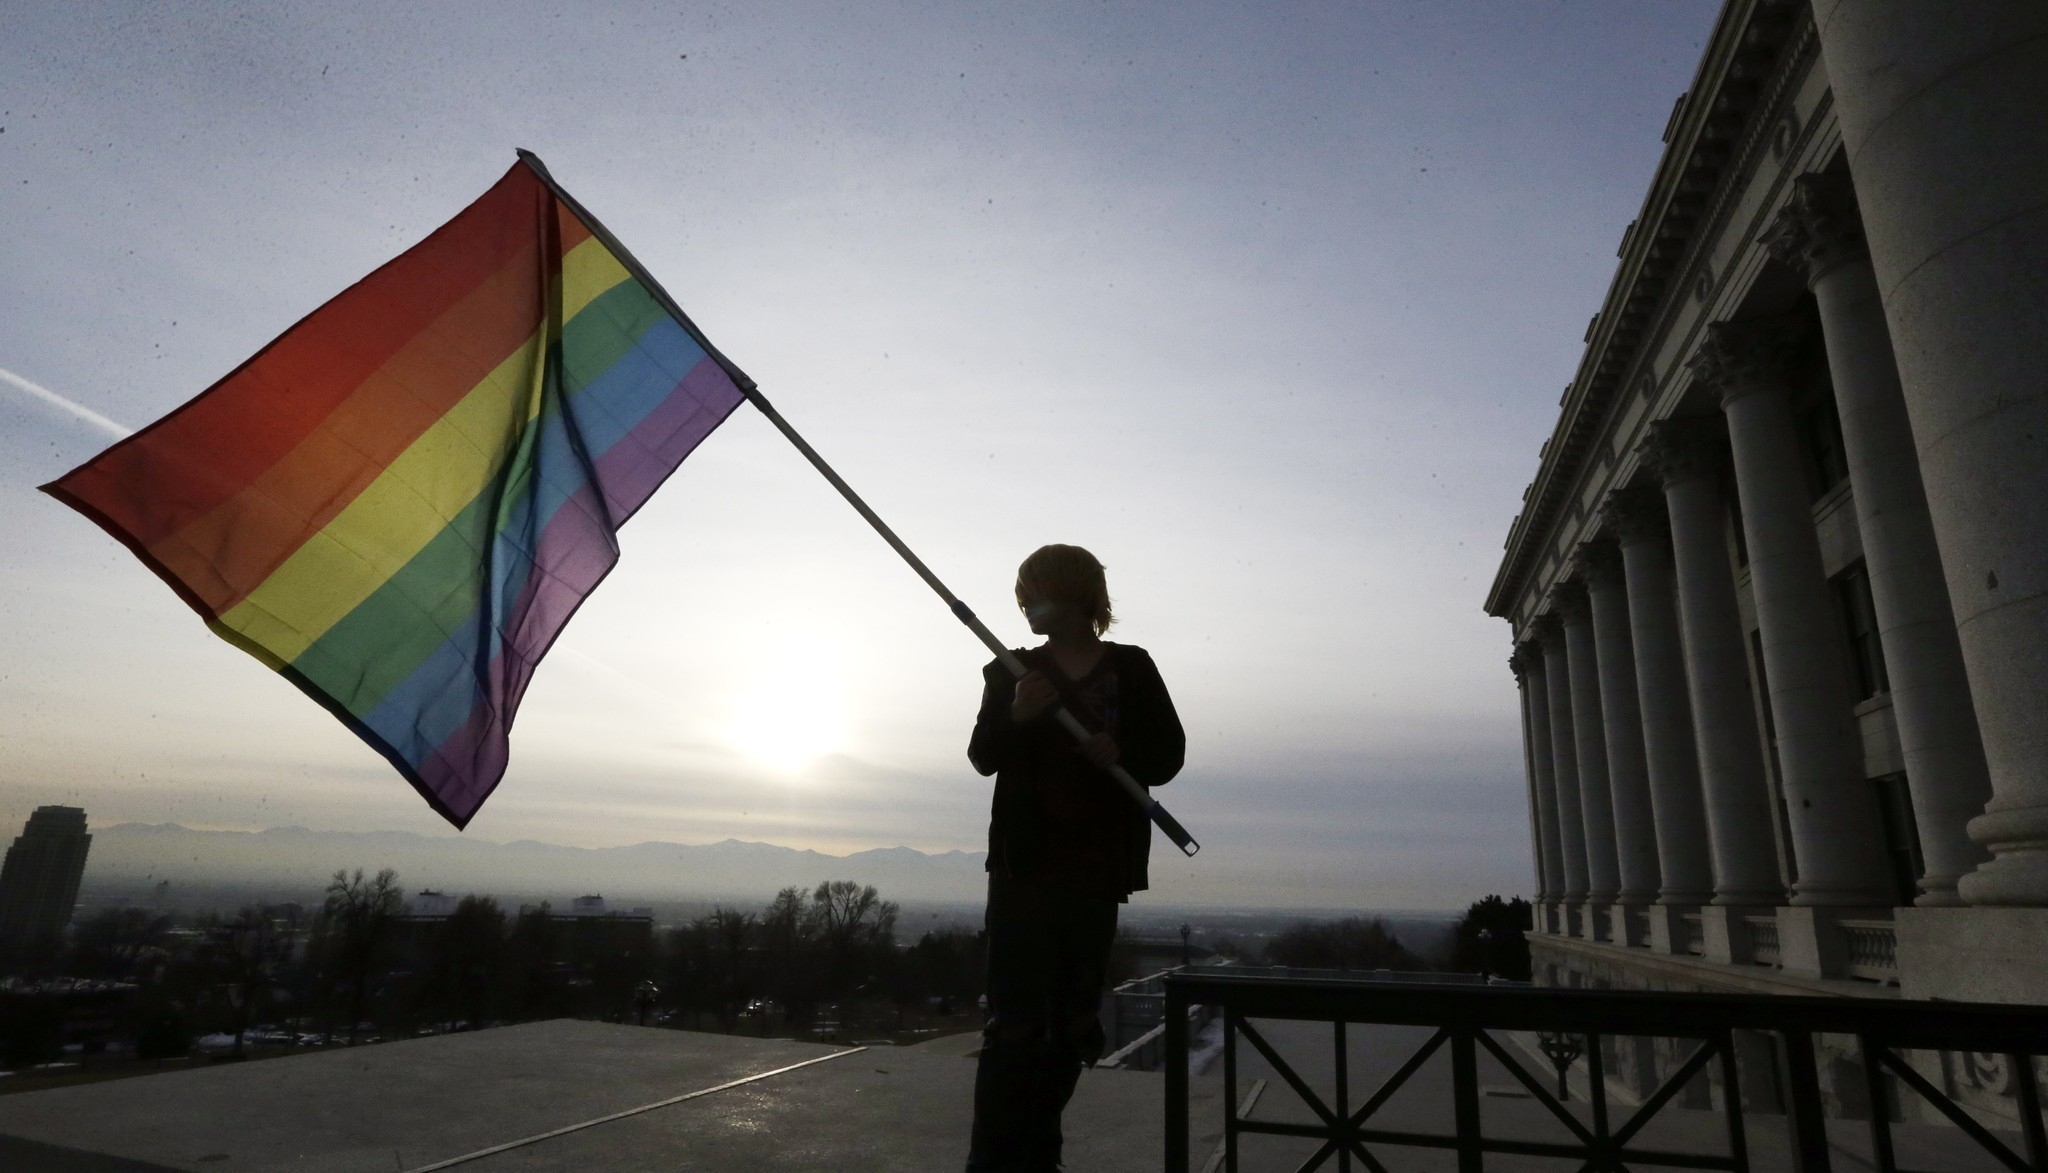 Utah Asks Supreme Court to Stay Ruling on Recognizing Same-Sex Marriage